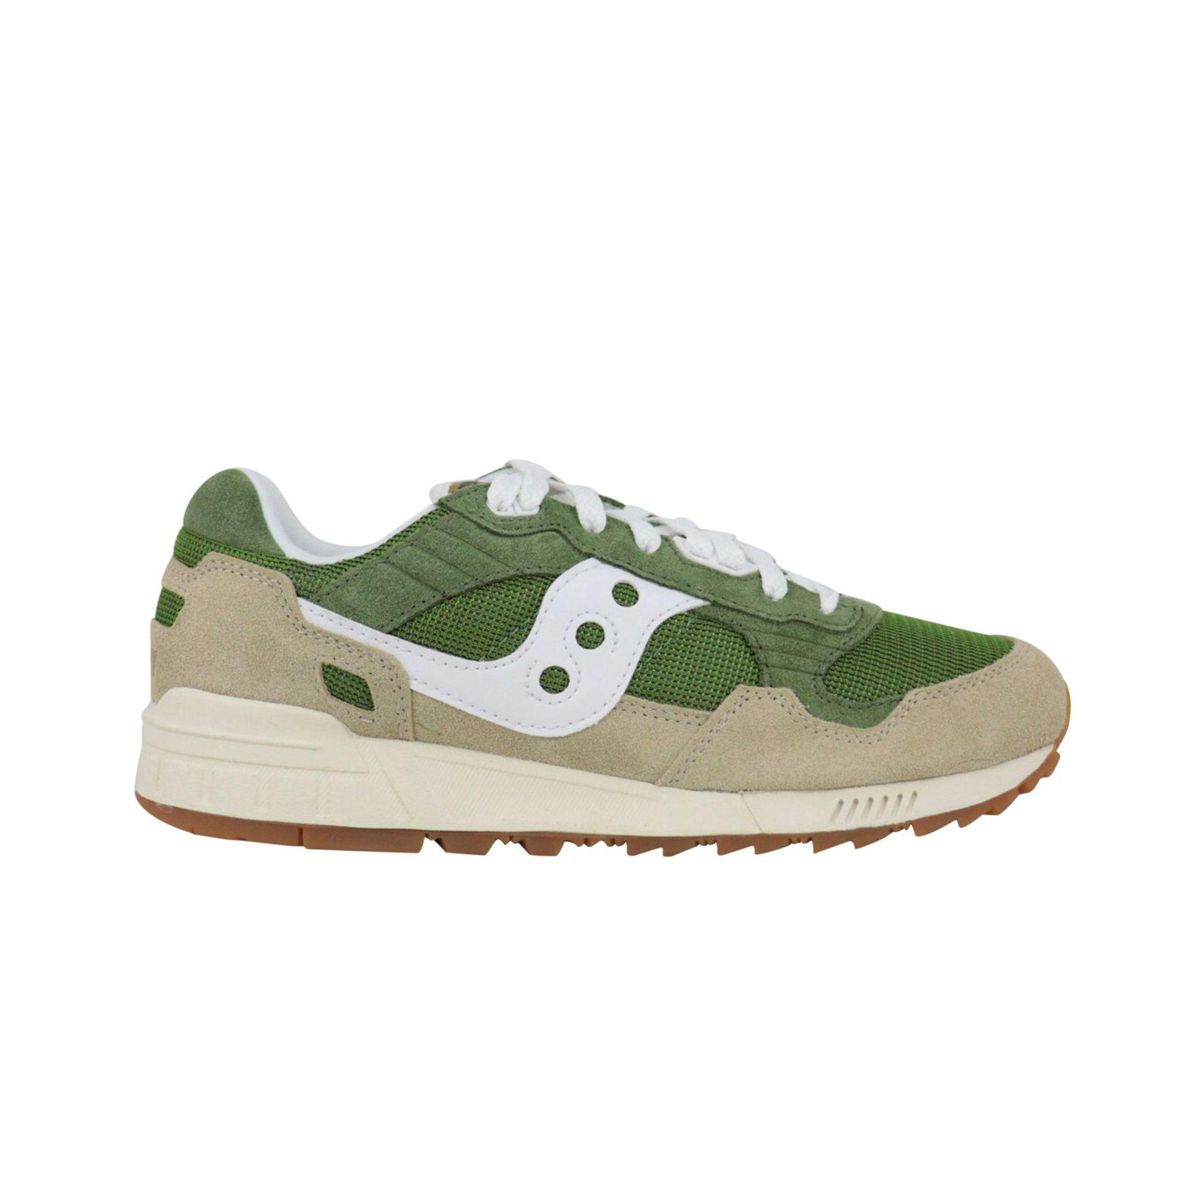 Shadow 5000 sneakers in suede and nylon Green / brown Saucony